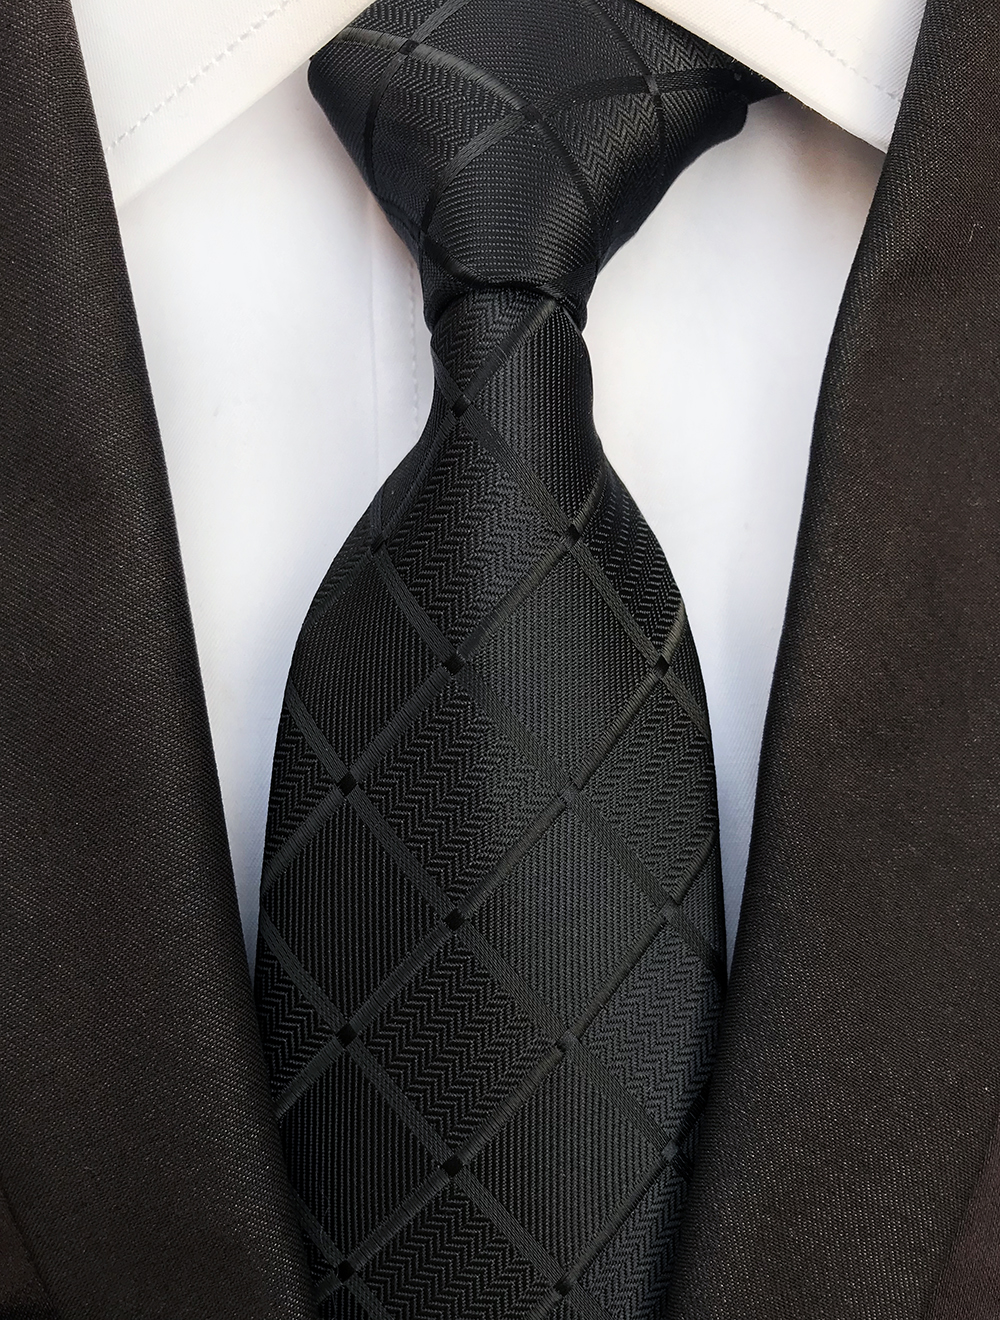 Men's Formal Necktie with Grids